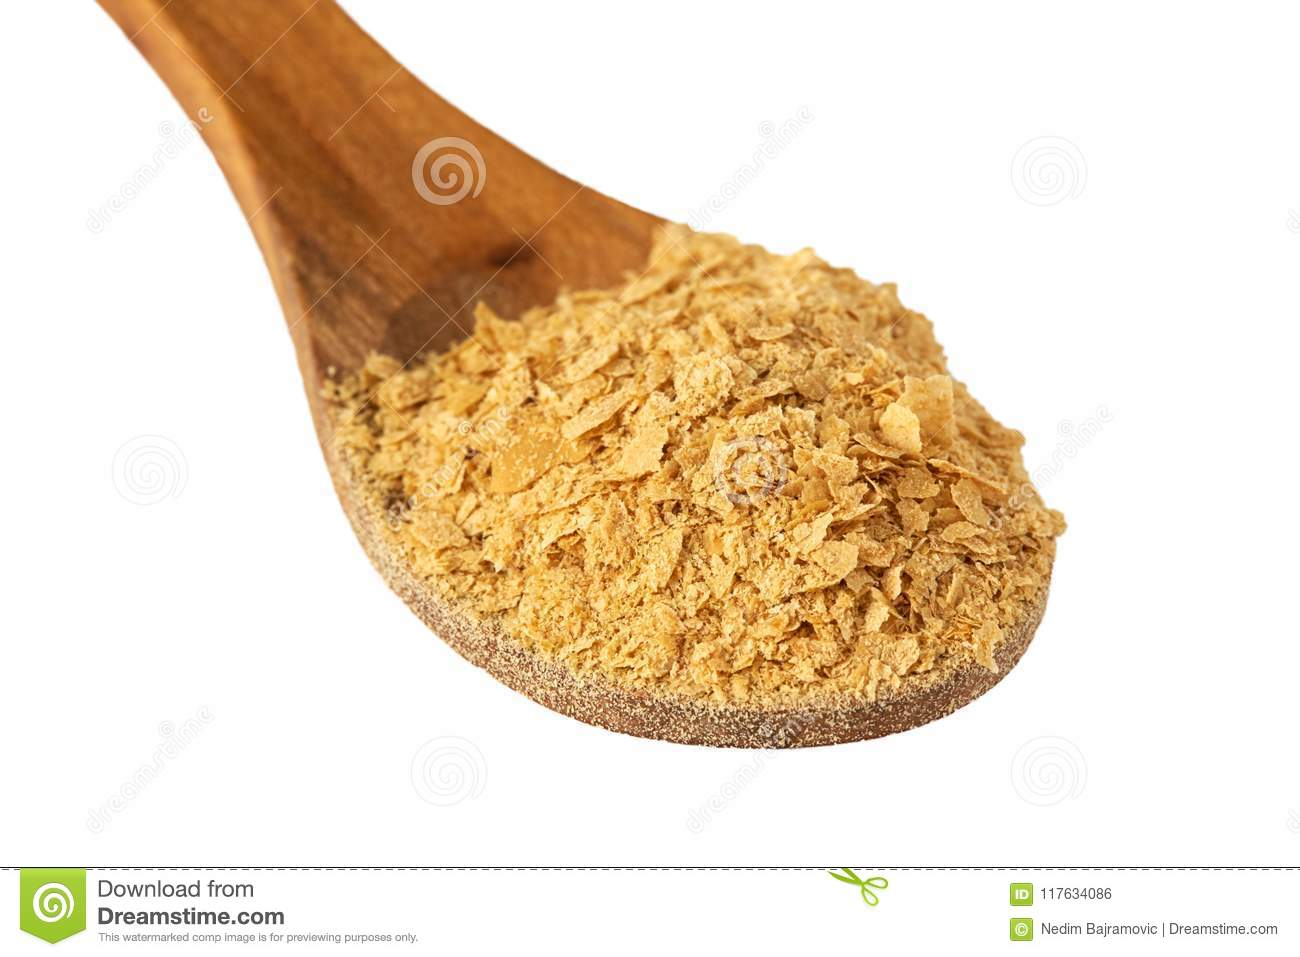 Nutritional brewers yeast flakes